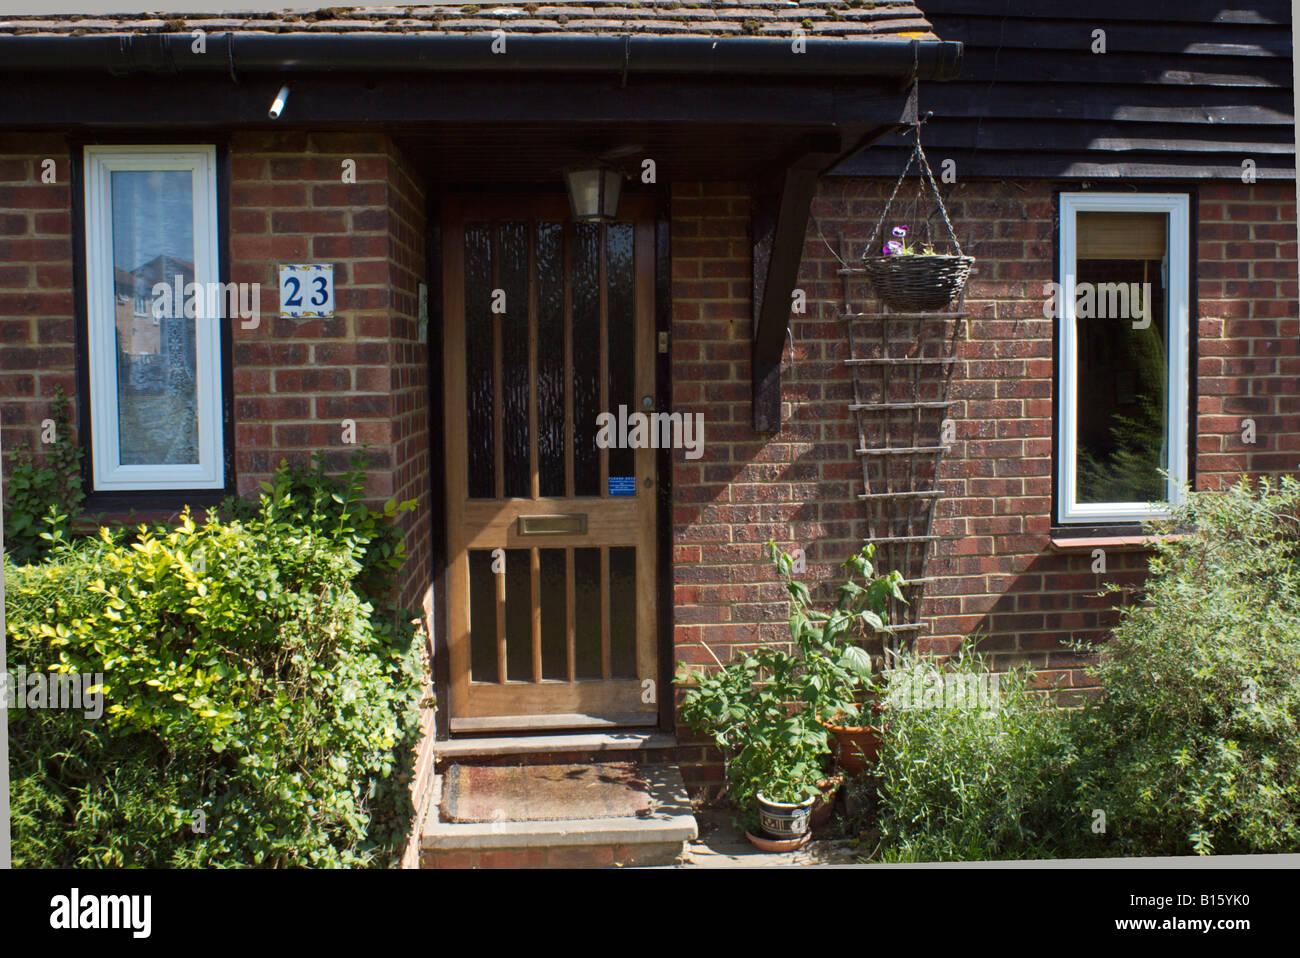 Ordinary house front  in suburban Goldsworth Park Woking Surrey England photographer's own home - Stock Image